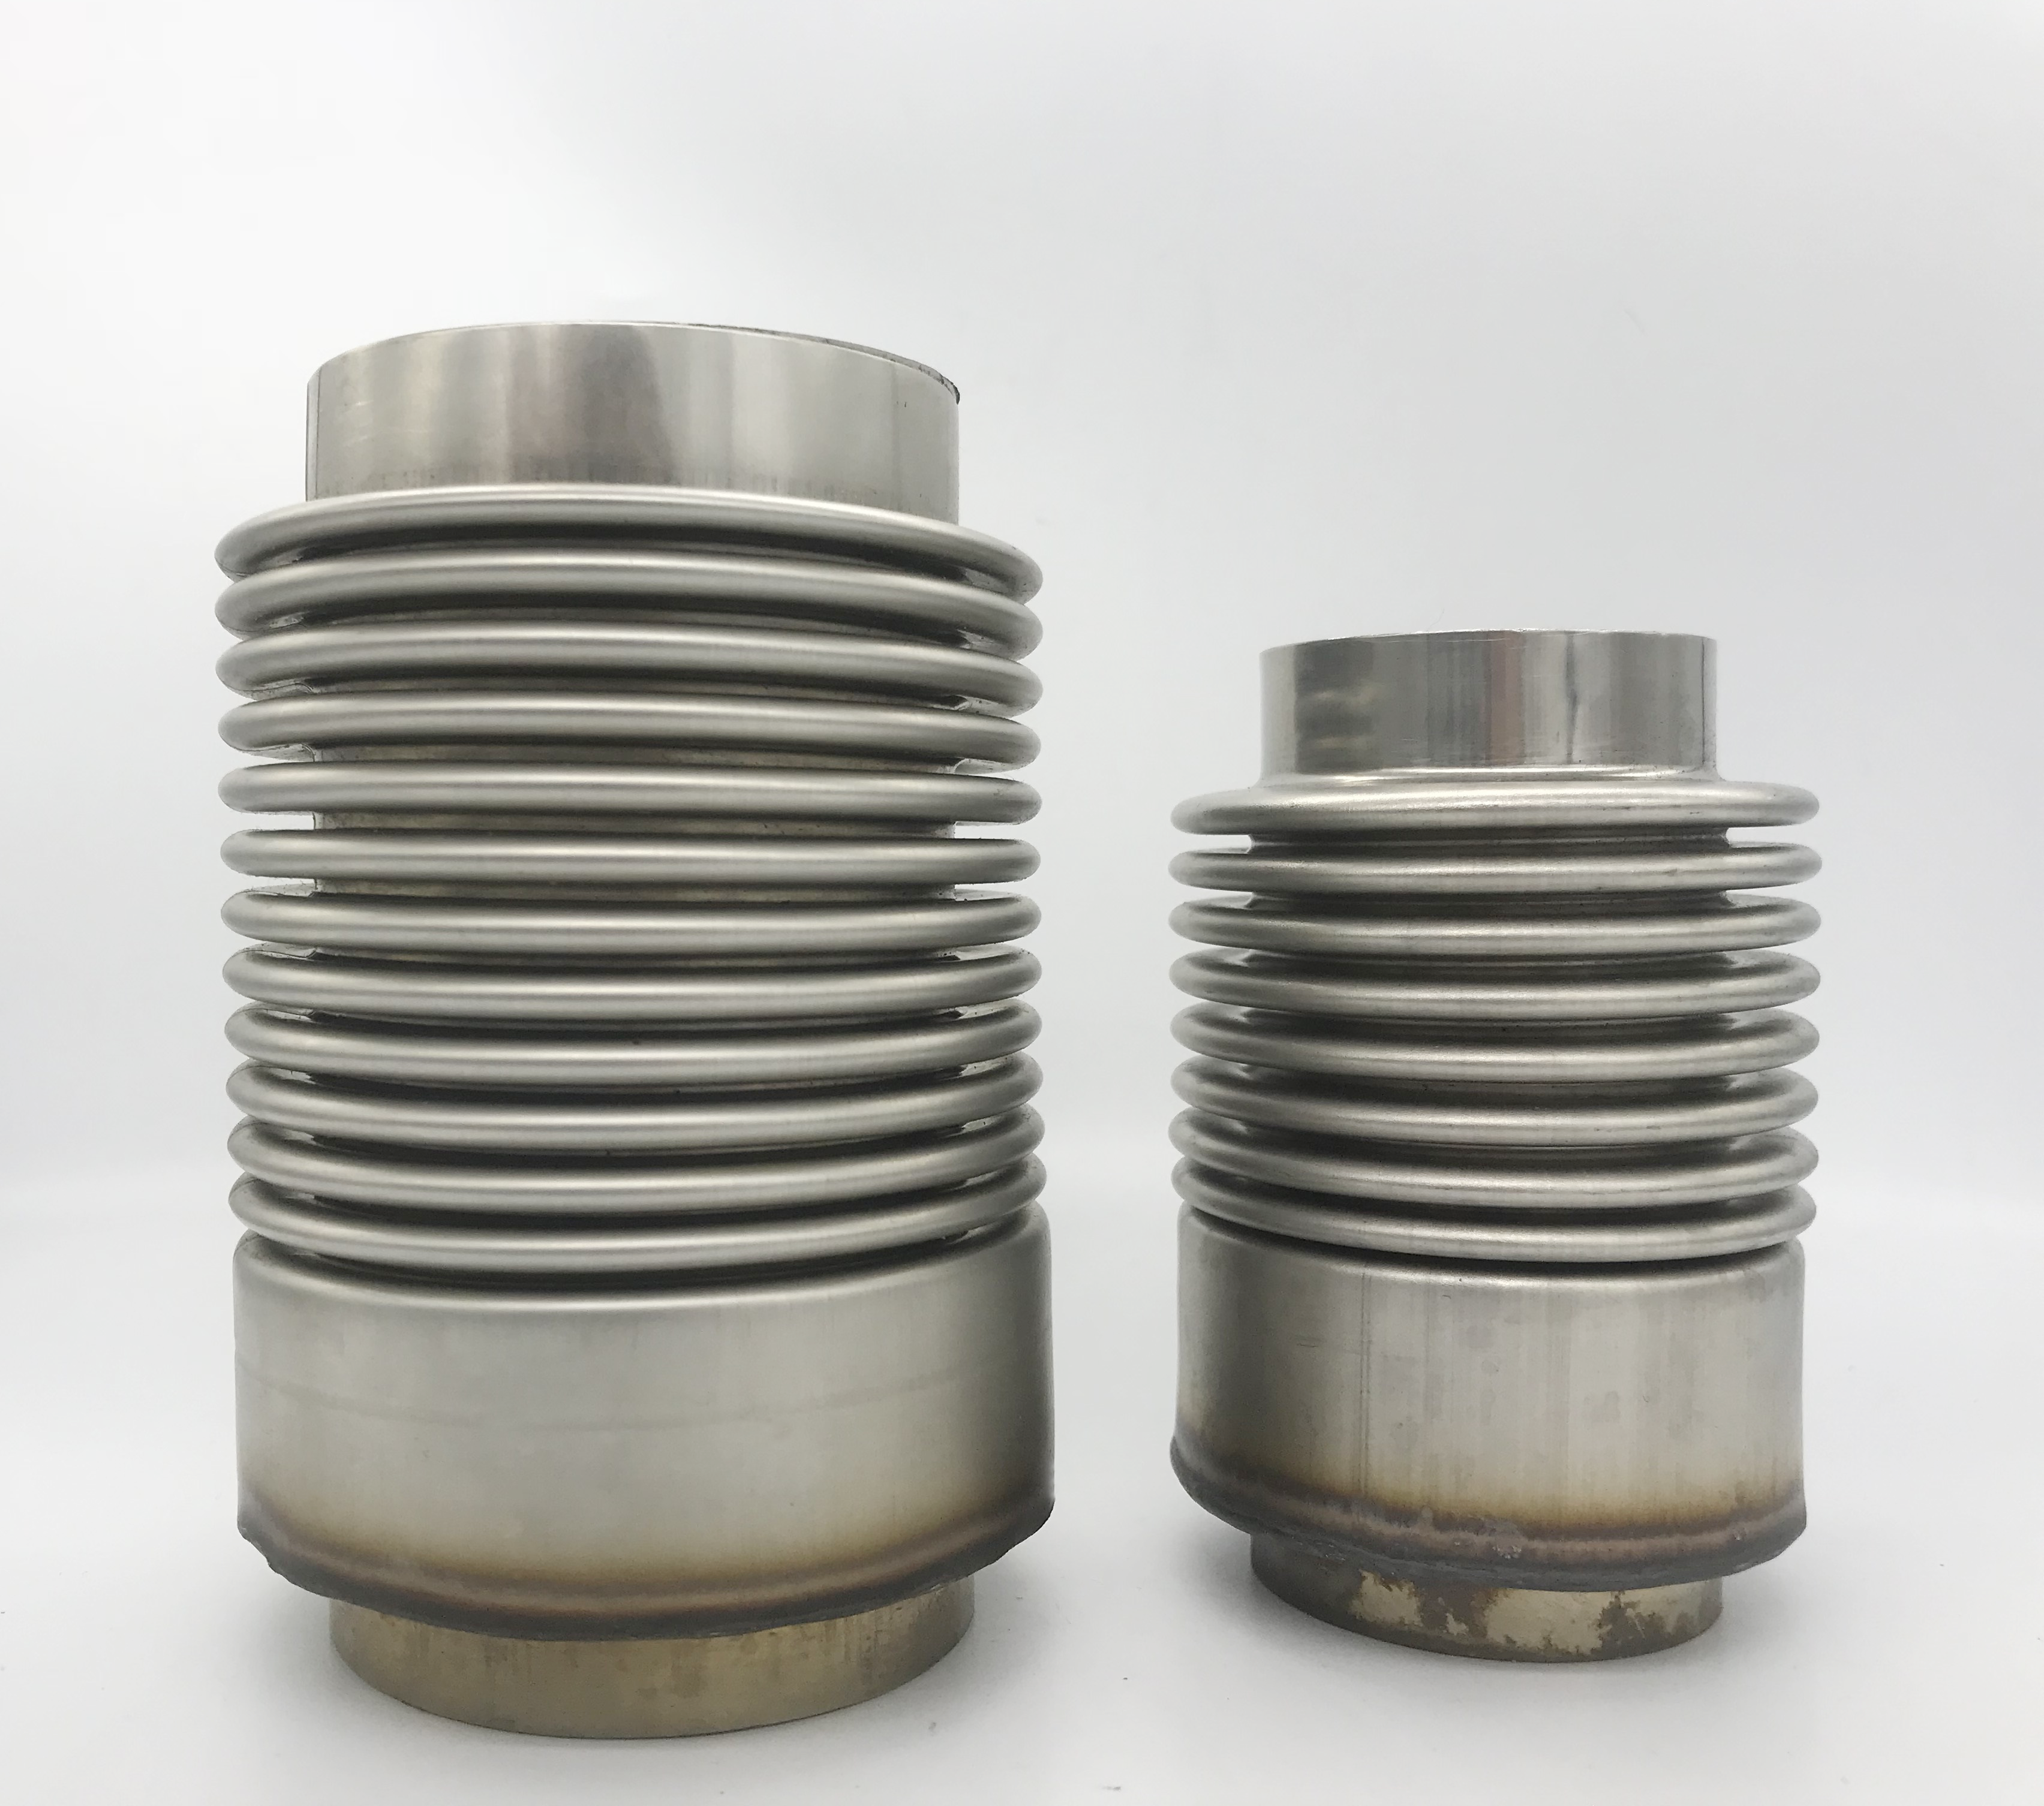 Double layer exhaust flex stainless steel corrugated Bellow Pipe